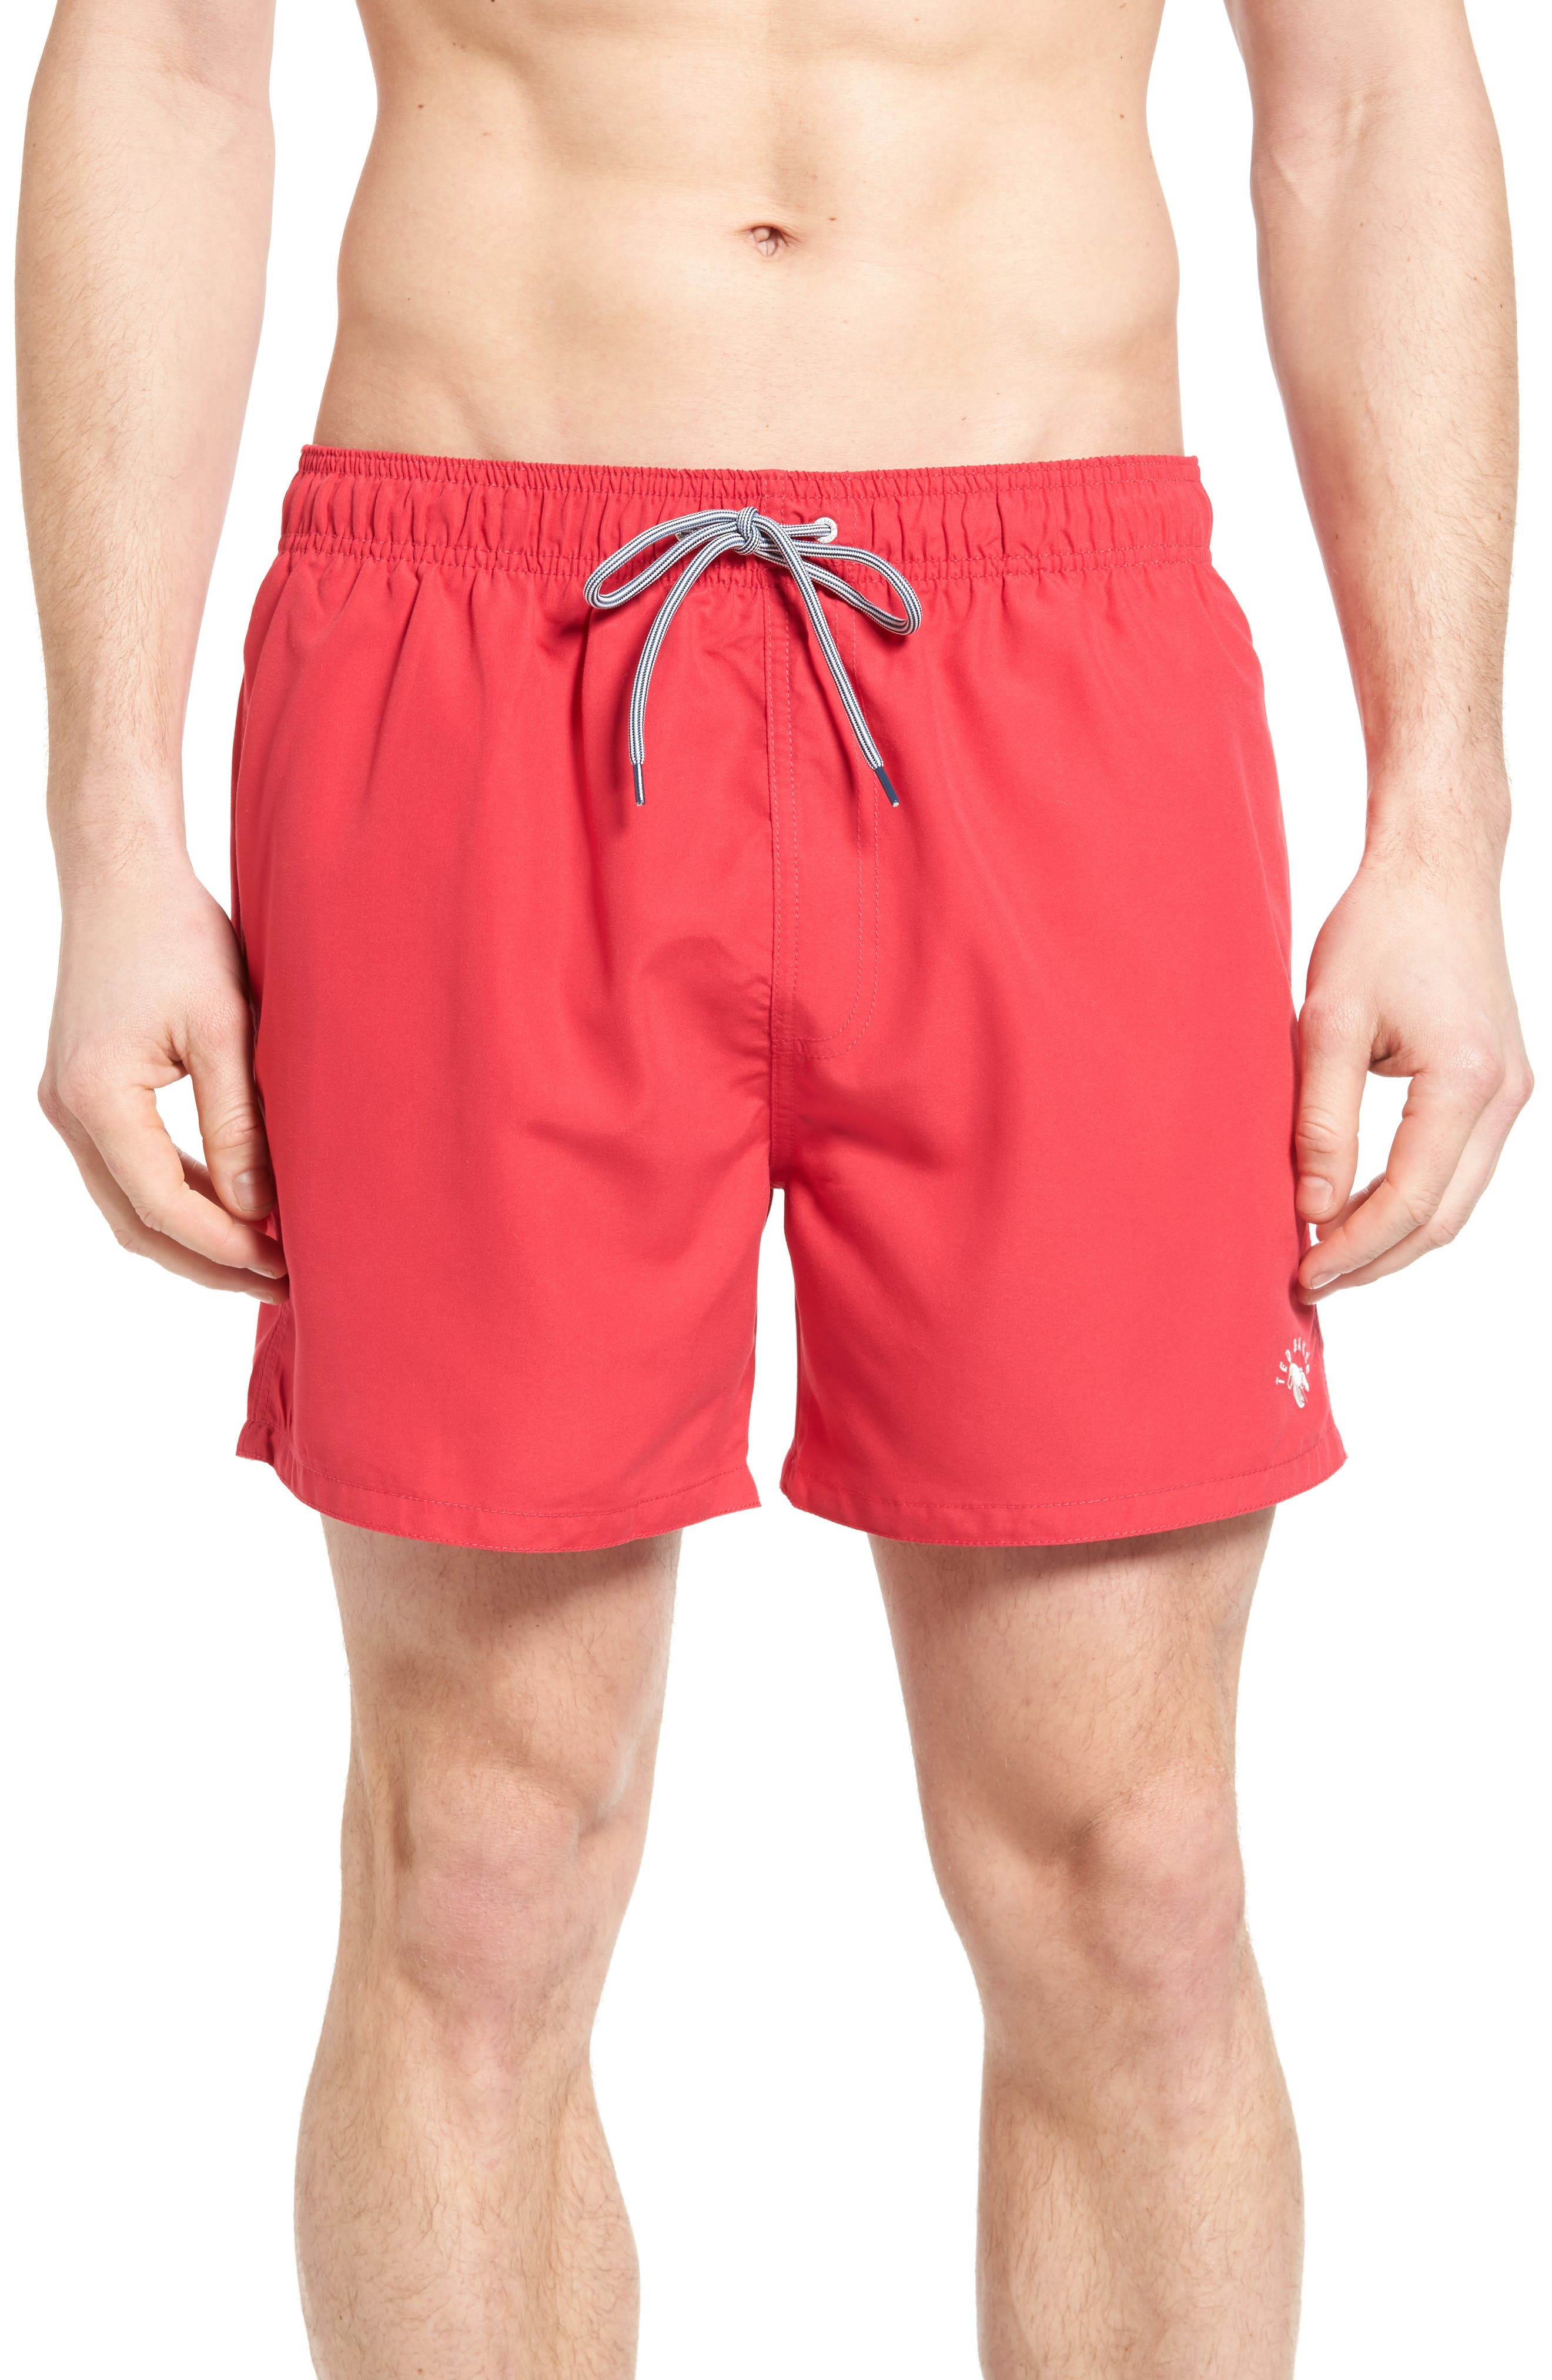 TED BAKER LONDON Marky Swim Shorts